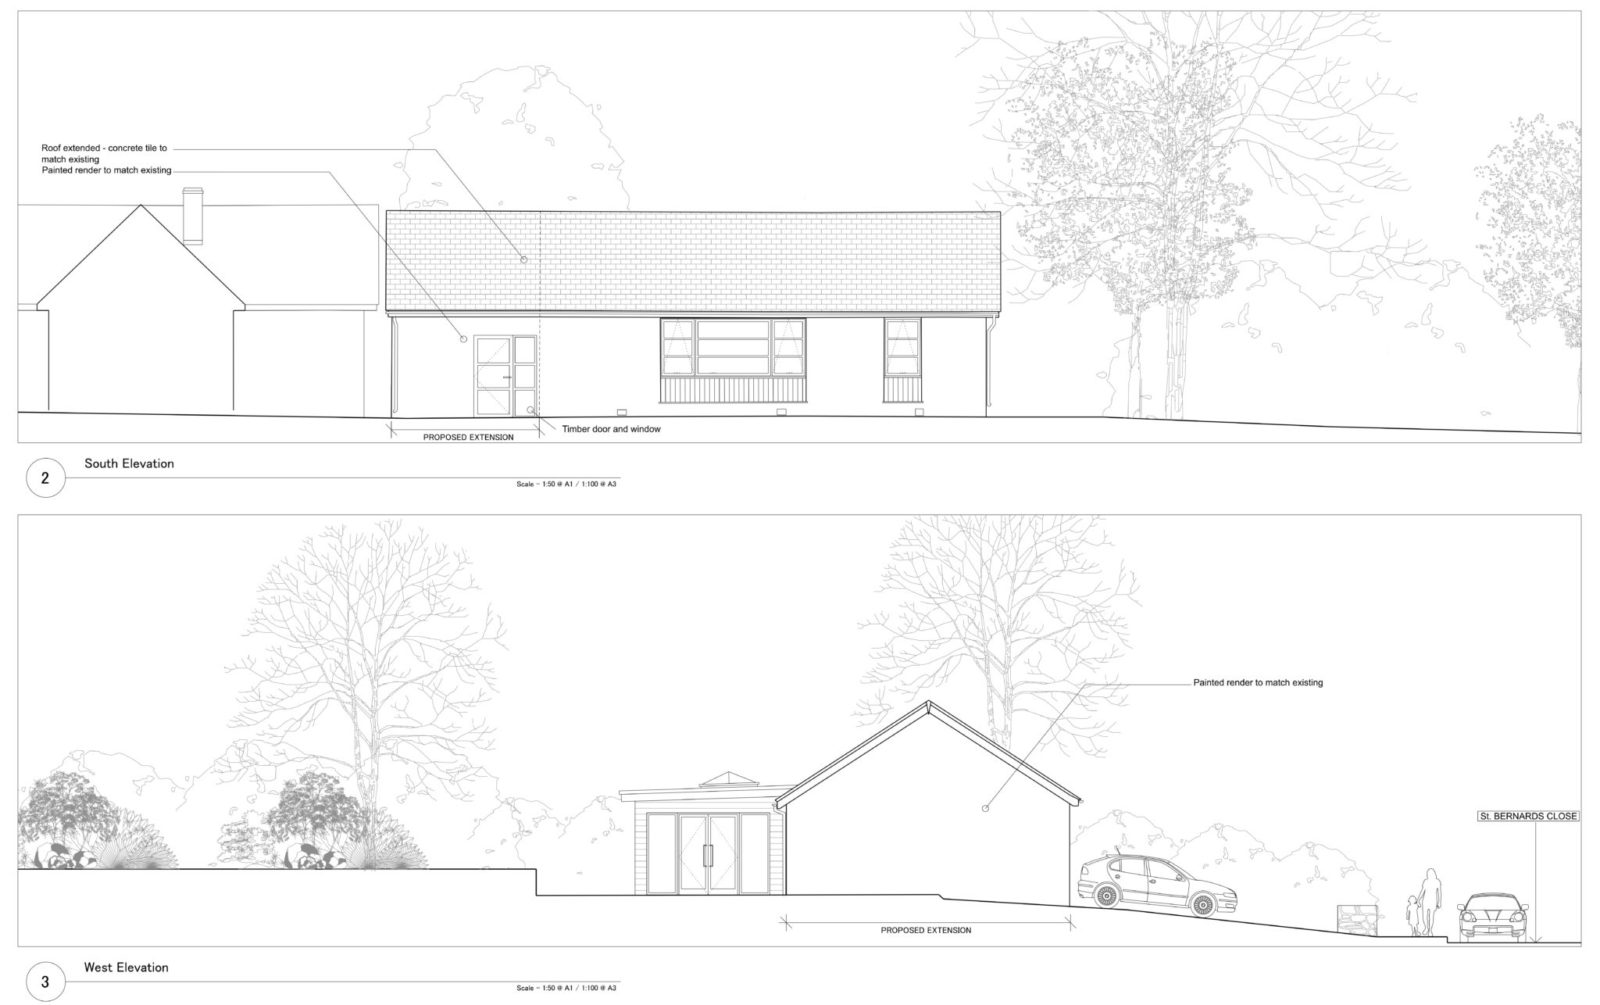 1 St. Bernards Close, Buckfast wins Planning Approval – Rud Sawers Architects, Devon